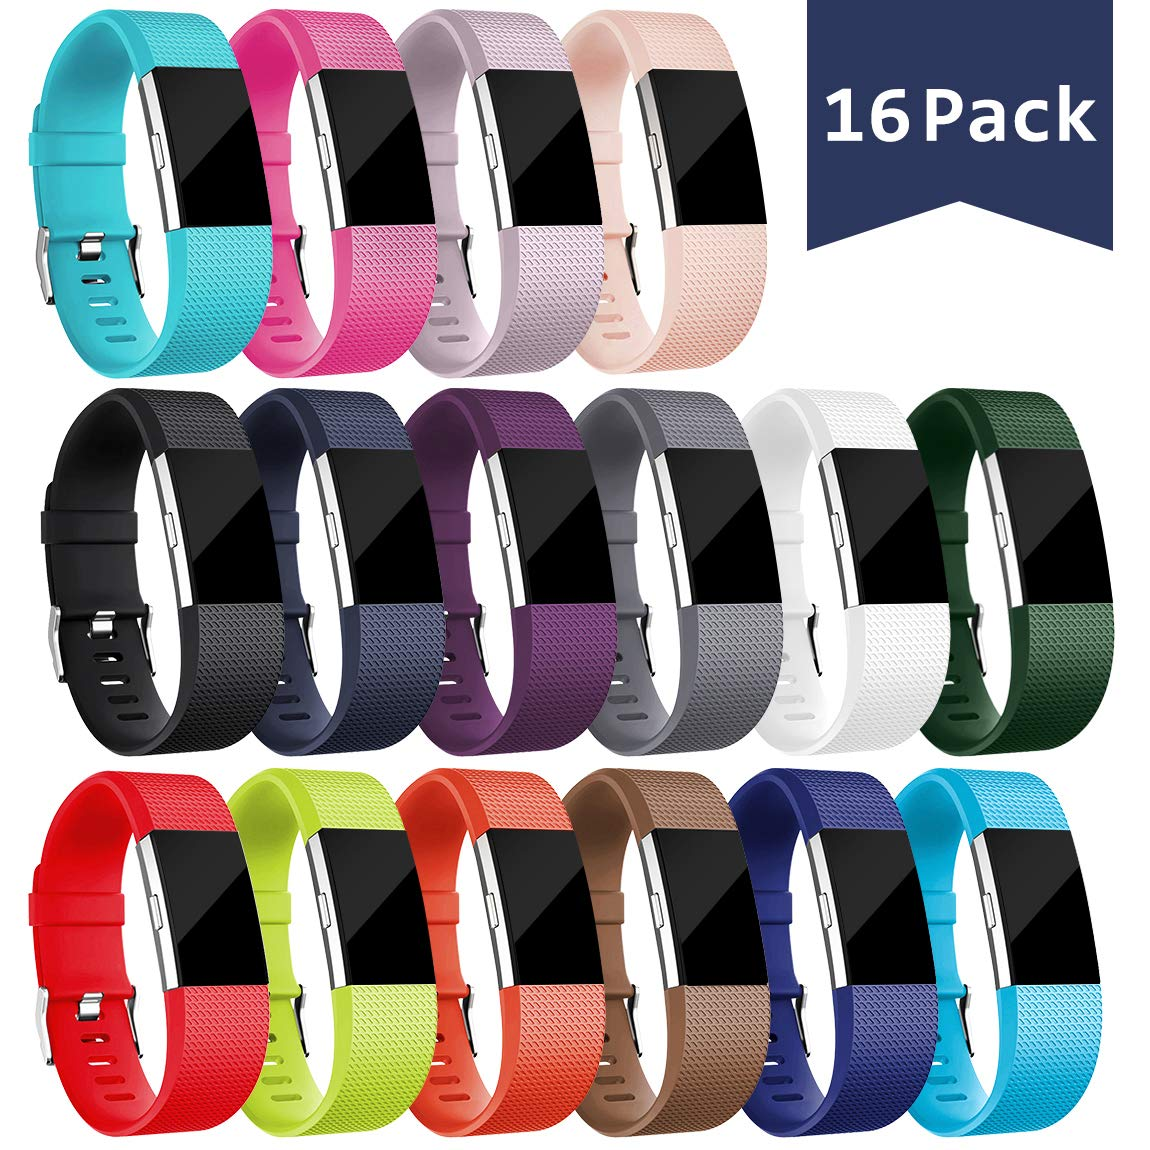 Maledan Replacement Bands Compatible with Fitbit Charge 2 for Women Men 16 Pack